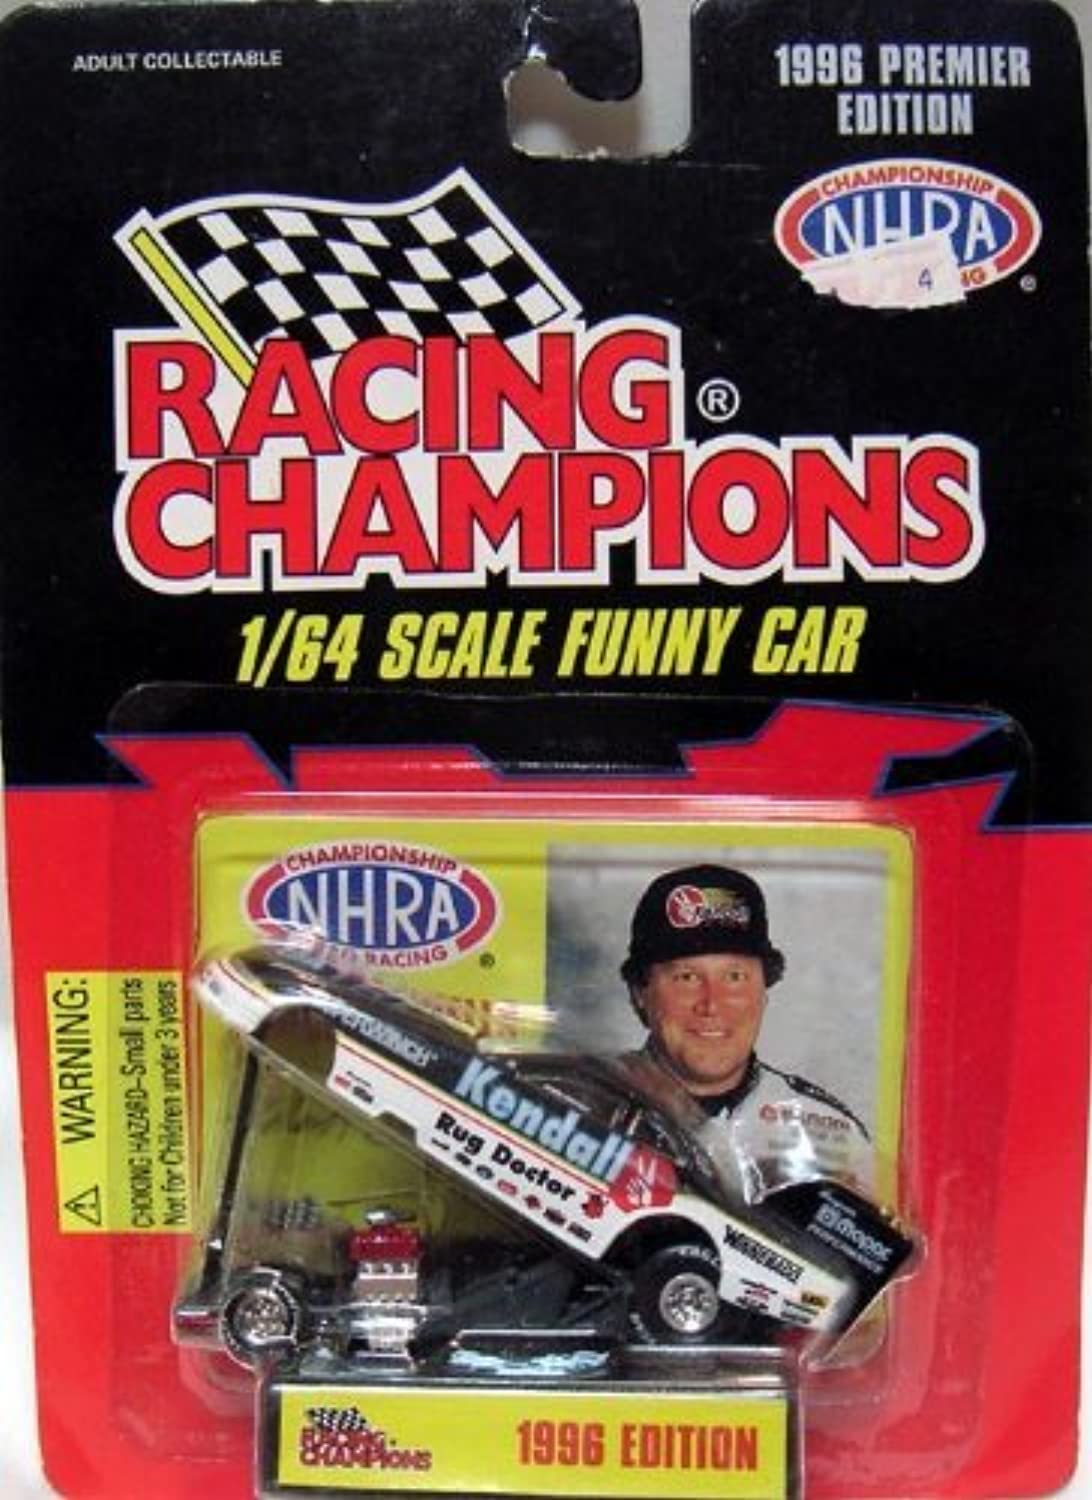 RACING CHAMPIONS 1996 PREMIER EDITION KENDALL DIE CAST VEHICLE by Racing Champions